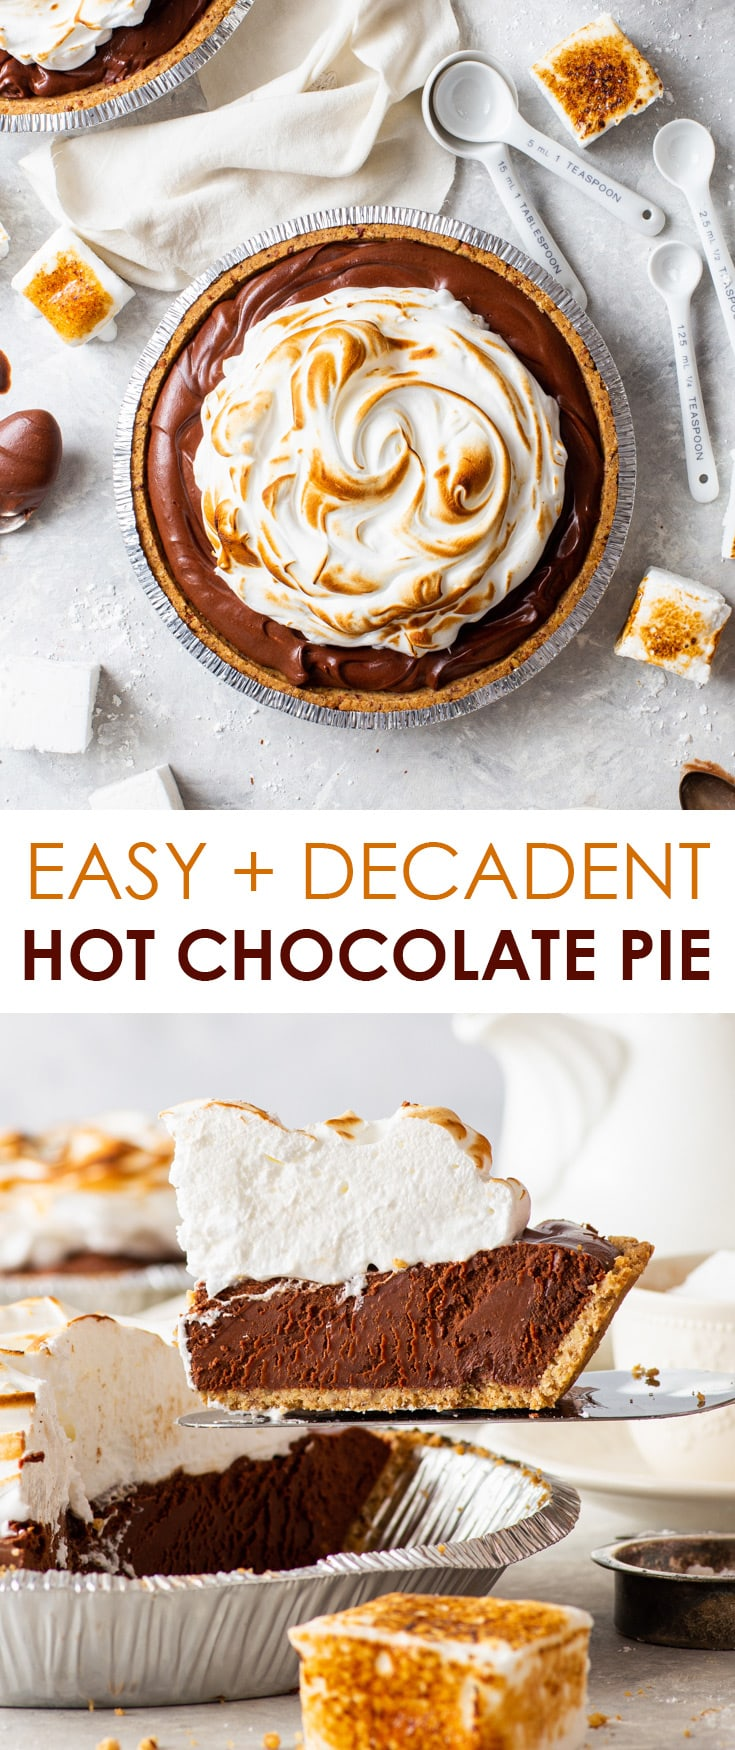 Easy + Decadent Hot Chocolate Pie [SPONSORED] - Meet your new favourite dessert: a hot chocolate pie that's stupid-easy to prepare (and can be prepared in advance!), has the most luscious chocolate filling (that's somewhere between a chocolate ganache and chocolate mousse) AND boasts a perfectly toasted Swiss meringue topping. Chocolate pie recipe. Chocolate desserts. Christmas desserts. Christmas recipes. Winter recipes. Holiday recipes. No bake recipes. #chocolate #pie